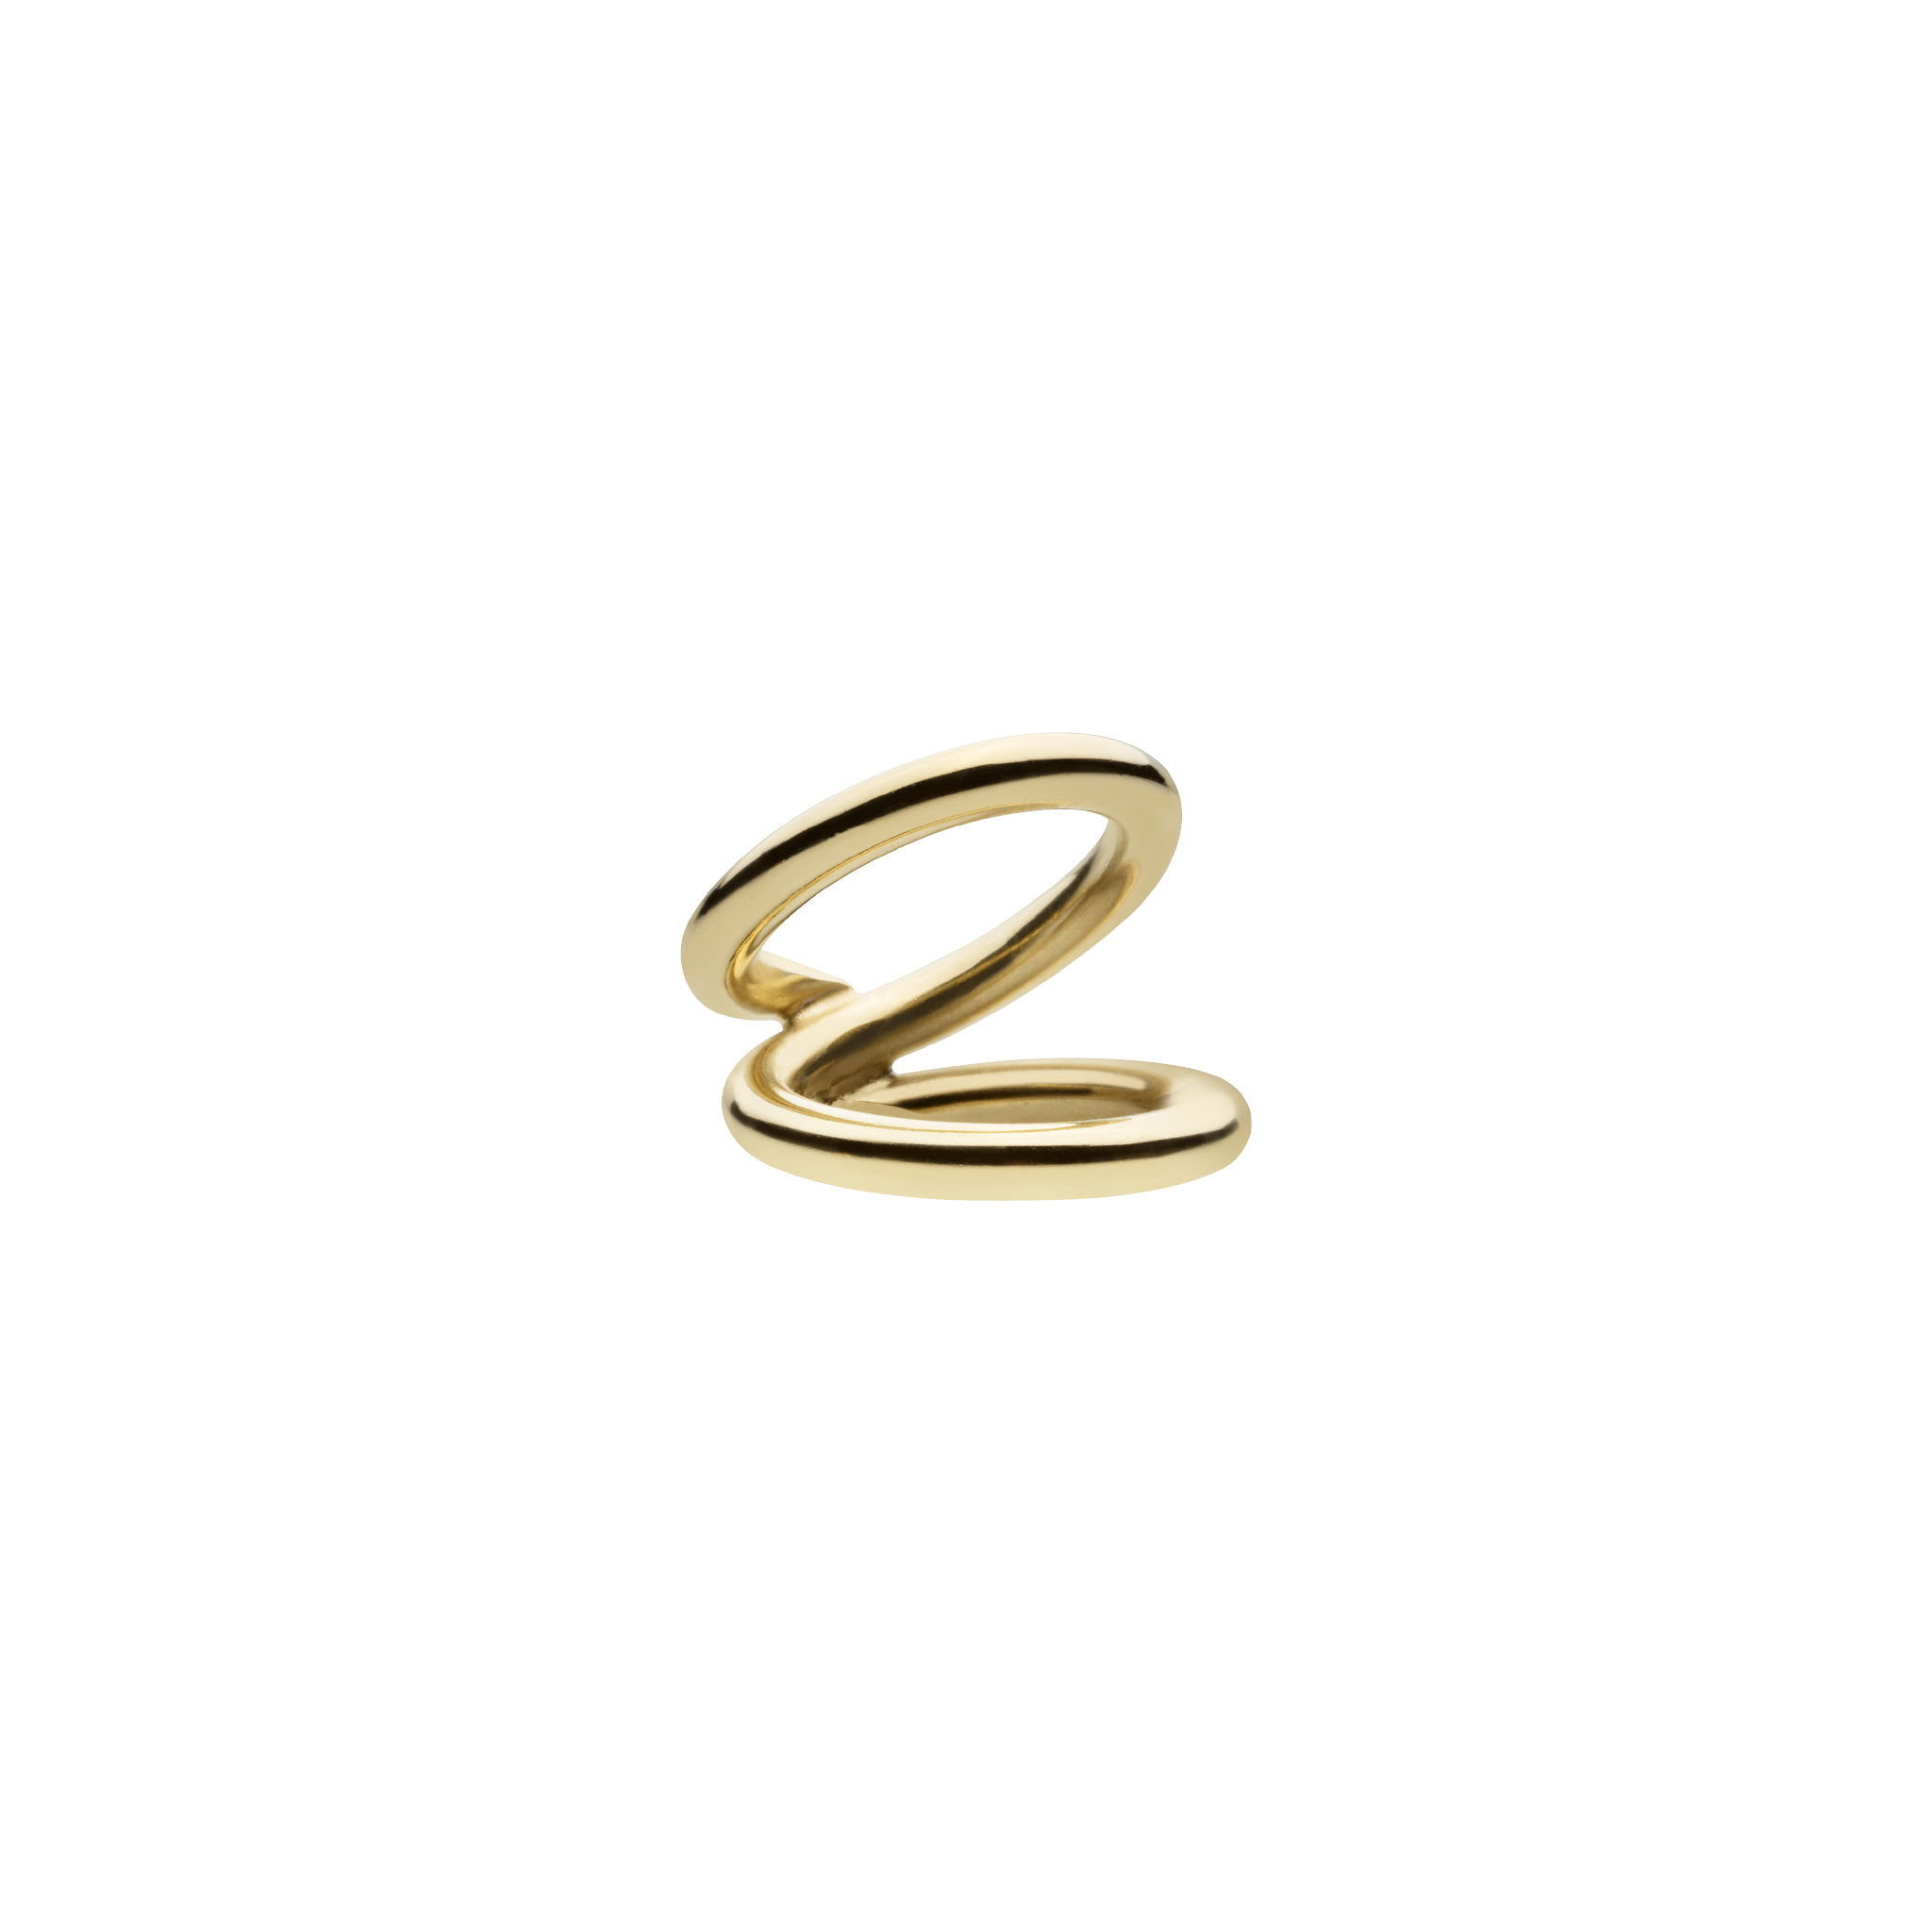 Bulky Viper Gold Ring